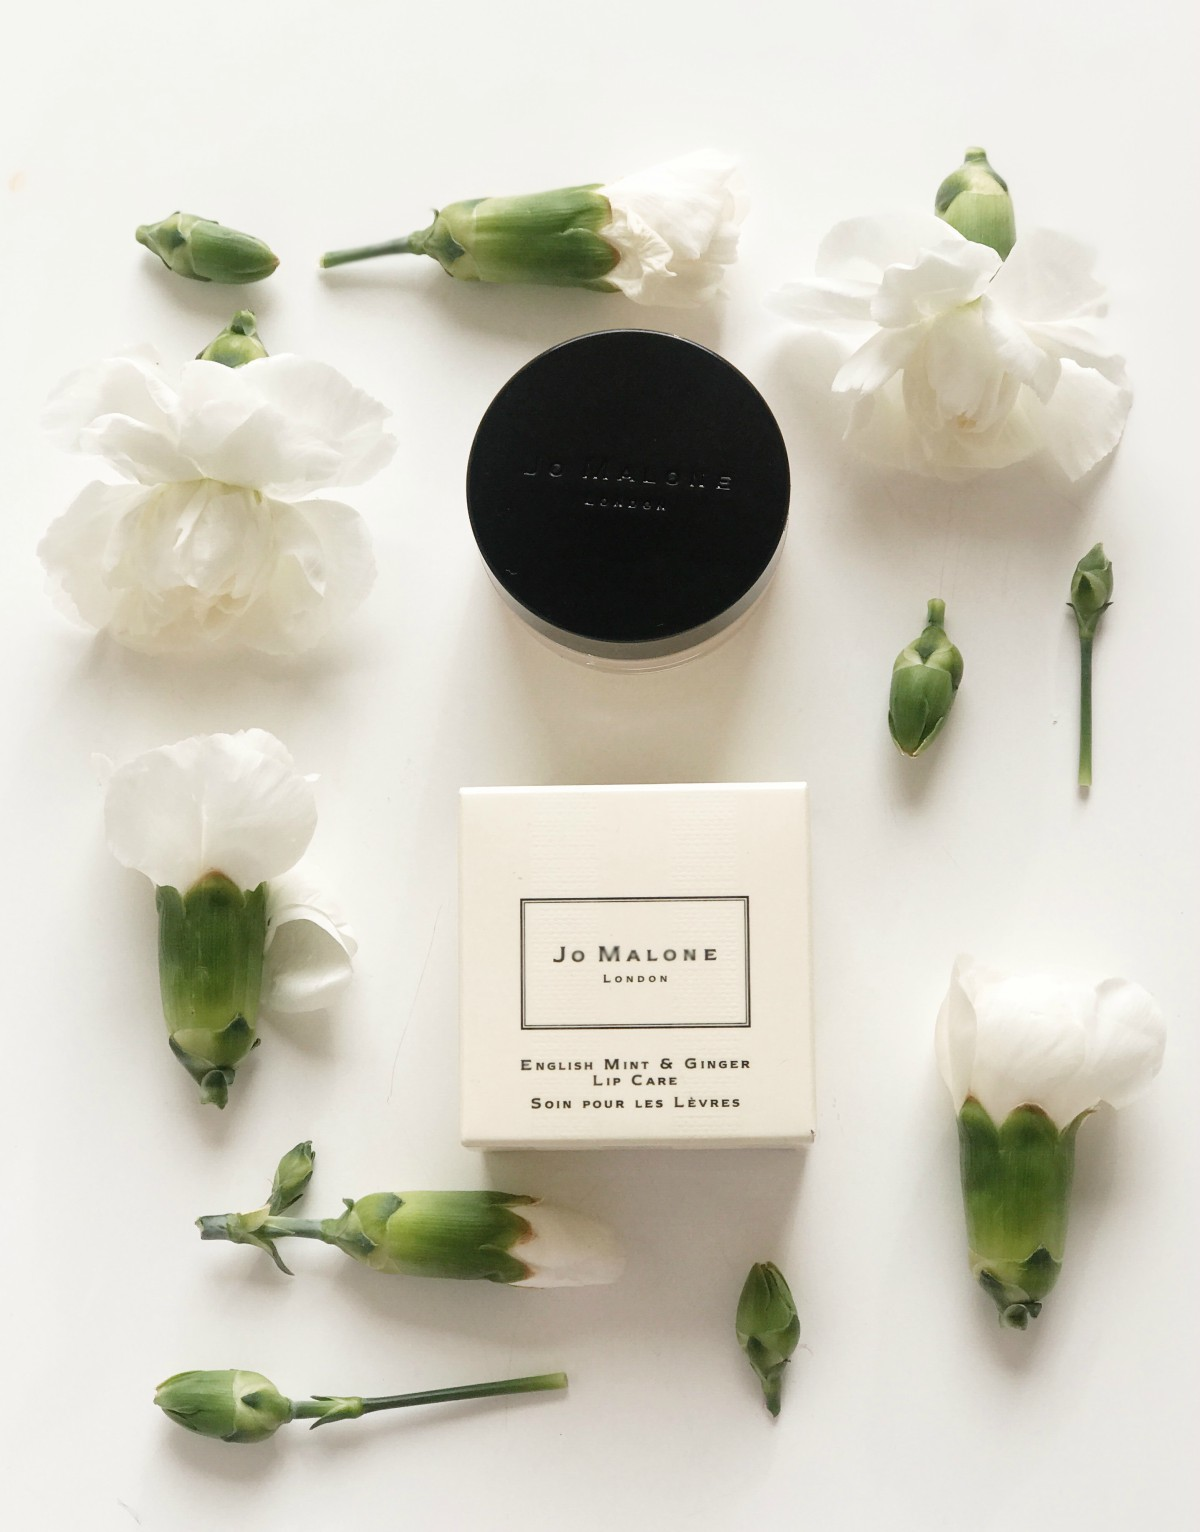 Jo Malone English Mint & Ginger Lip Care